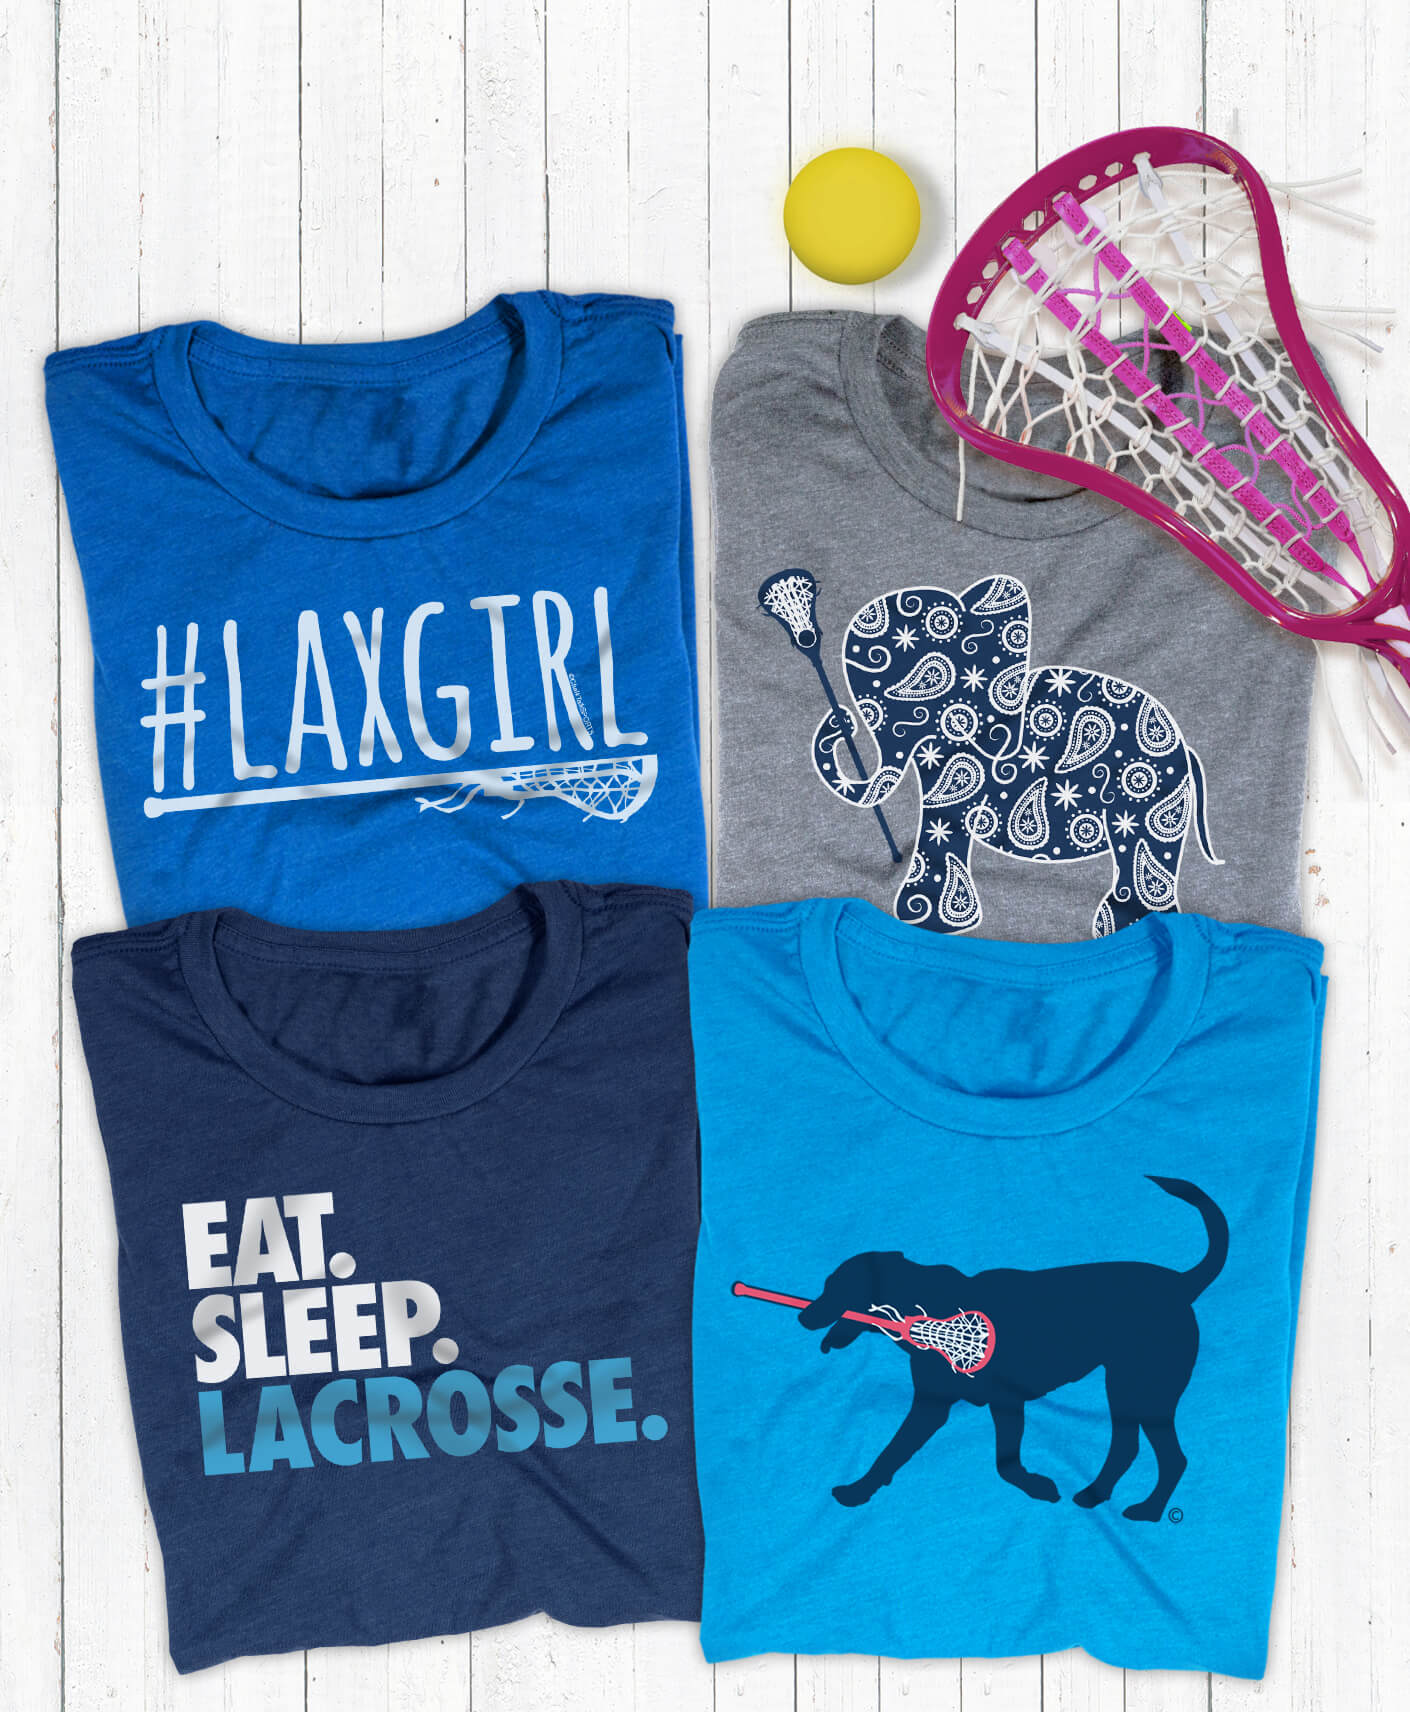 54ccd15c77e49 Custom Lacrosse Gifts and Apparel for Girls - LuLaLax